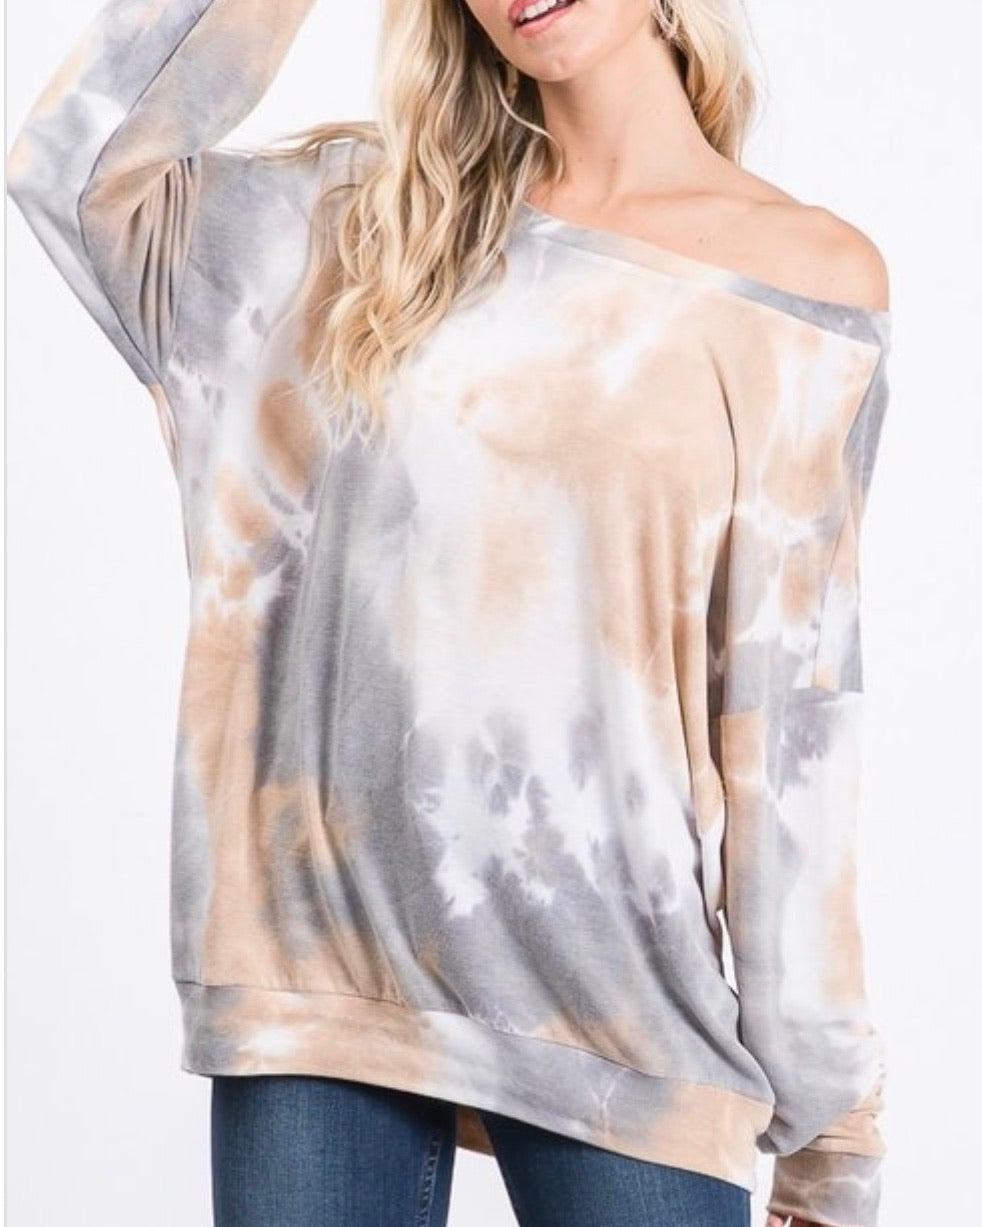 Sold Out ! Sophia Tie Dye Lightweight Sweatshirt / Top - Glamco Boutique